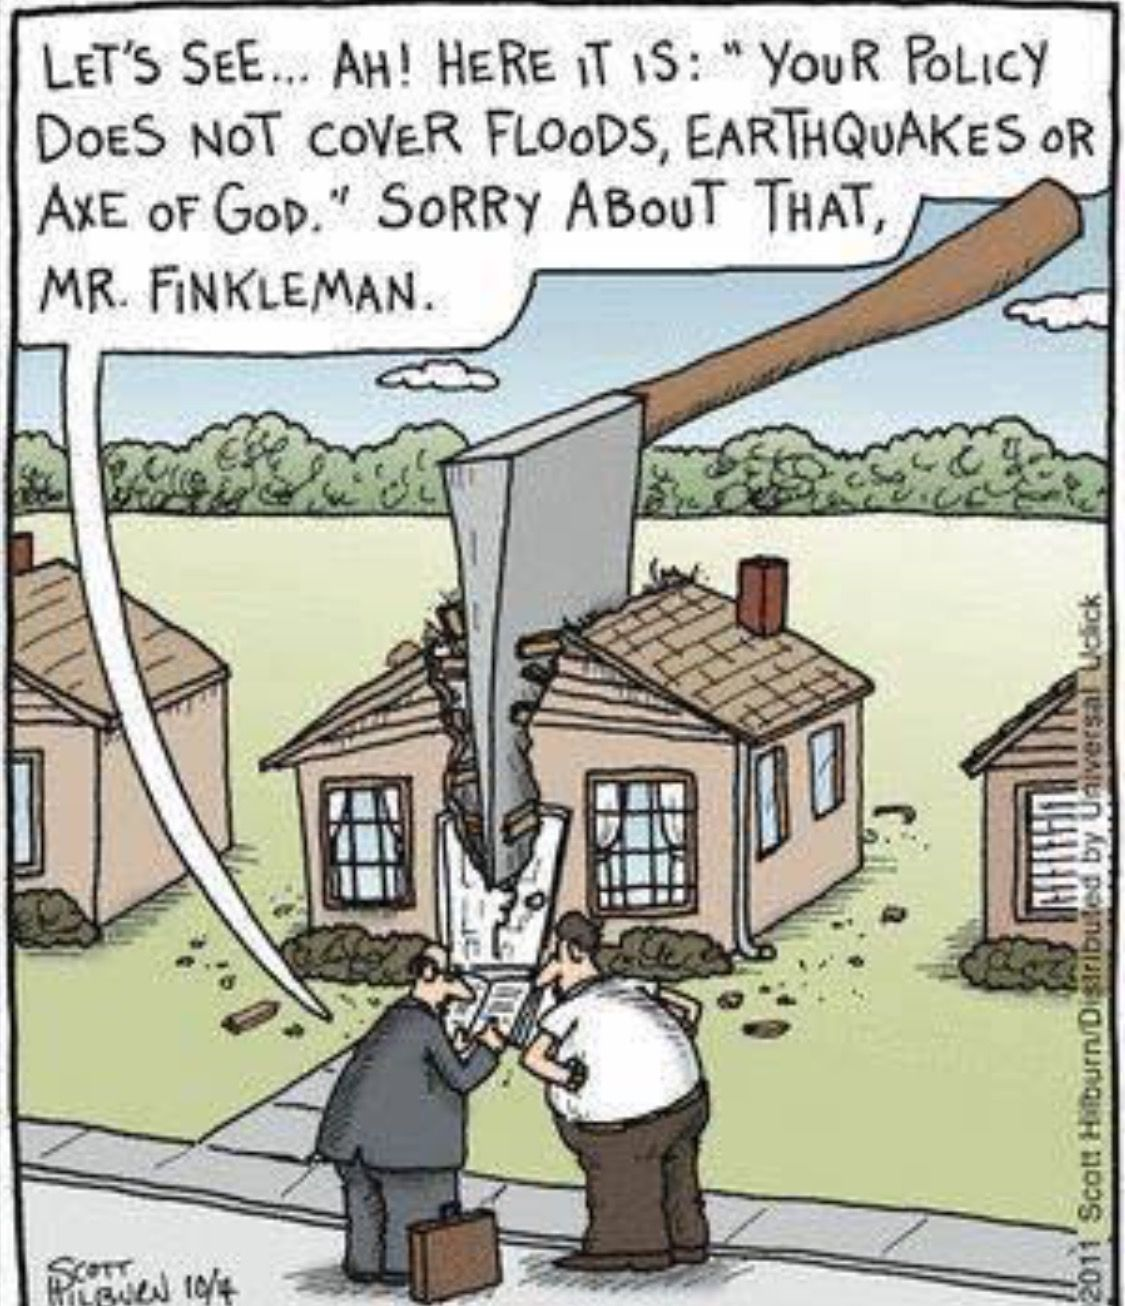 Pin by Ralphup on Bizaro (and close) Insurance humor